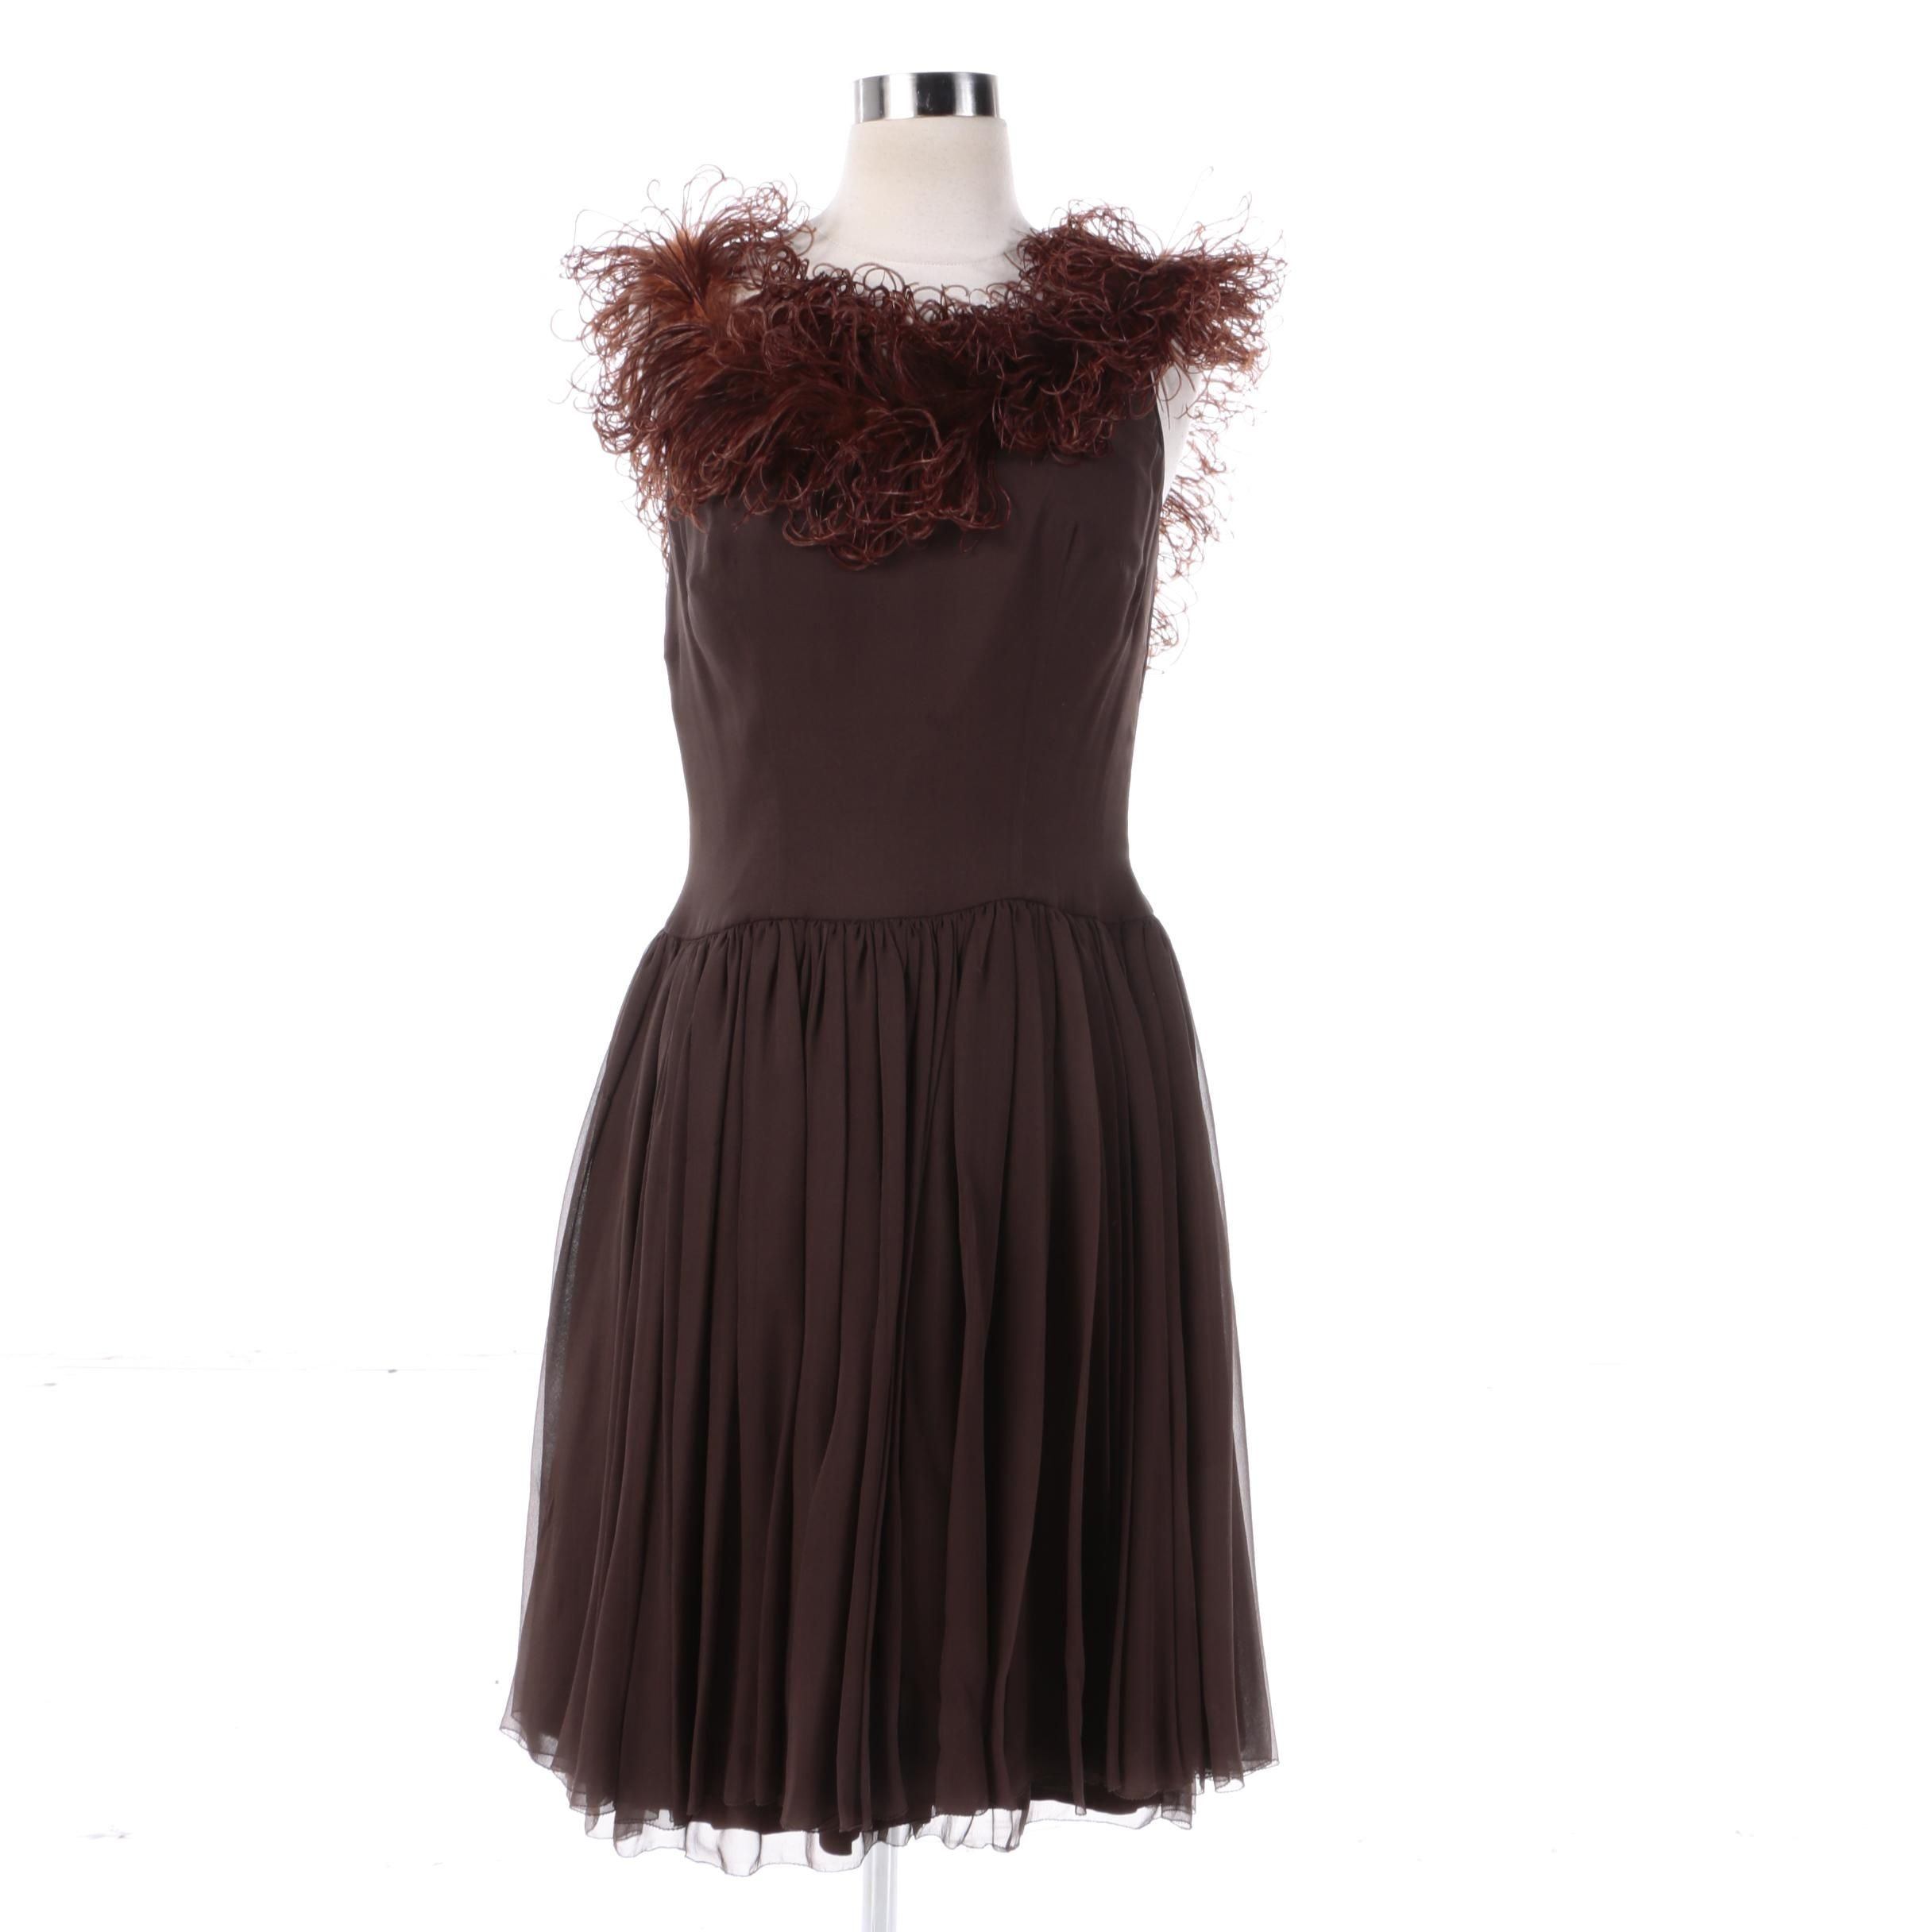 1960s Vintage Helga Ochre Brown Cocktail Dress with Ostrich Feather Neckline